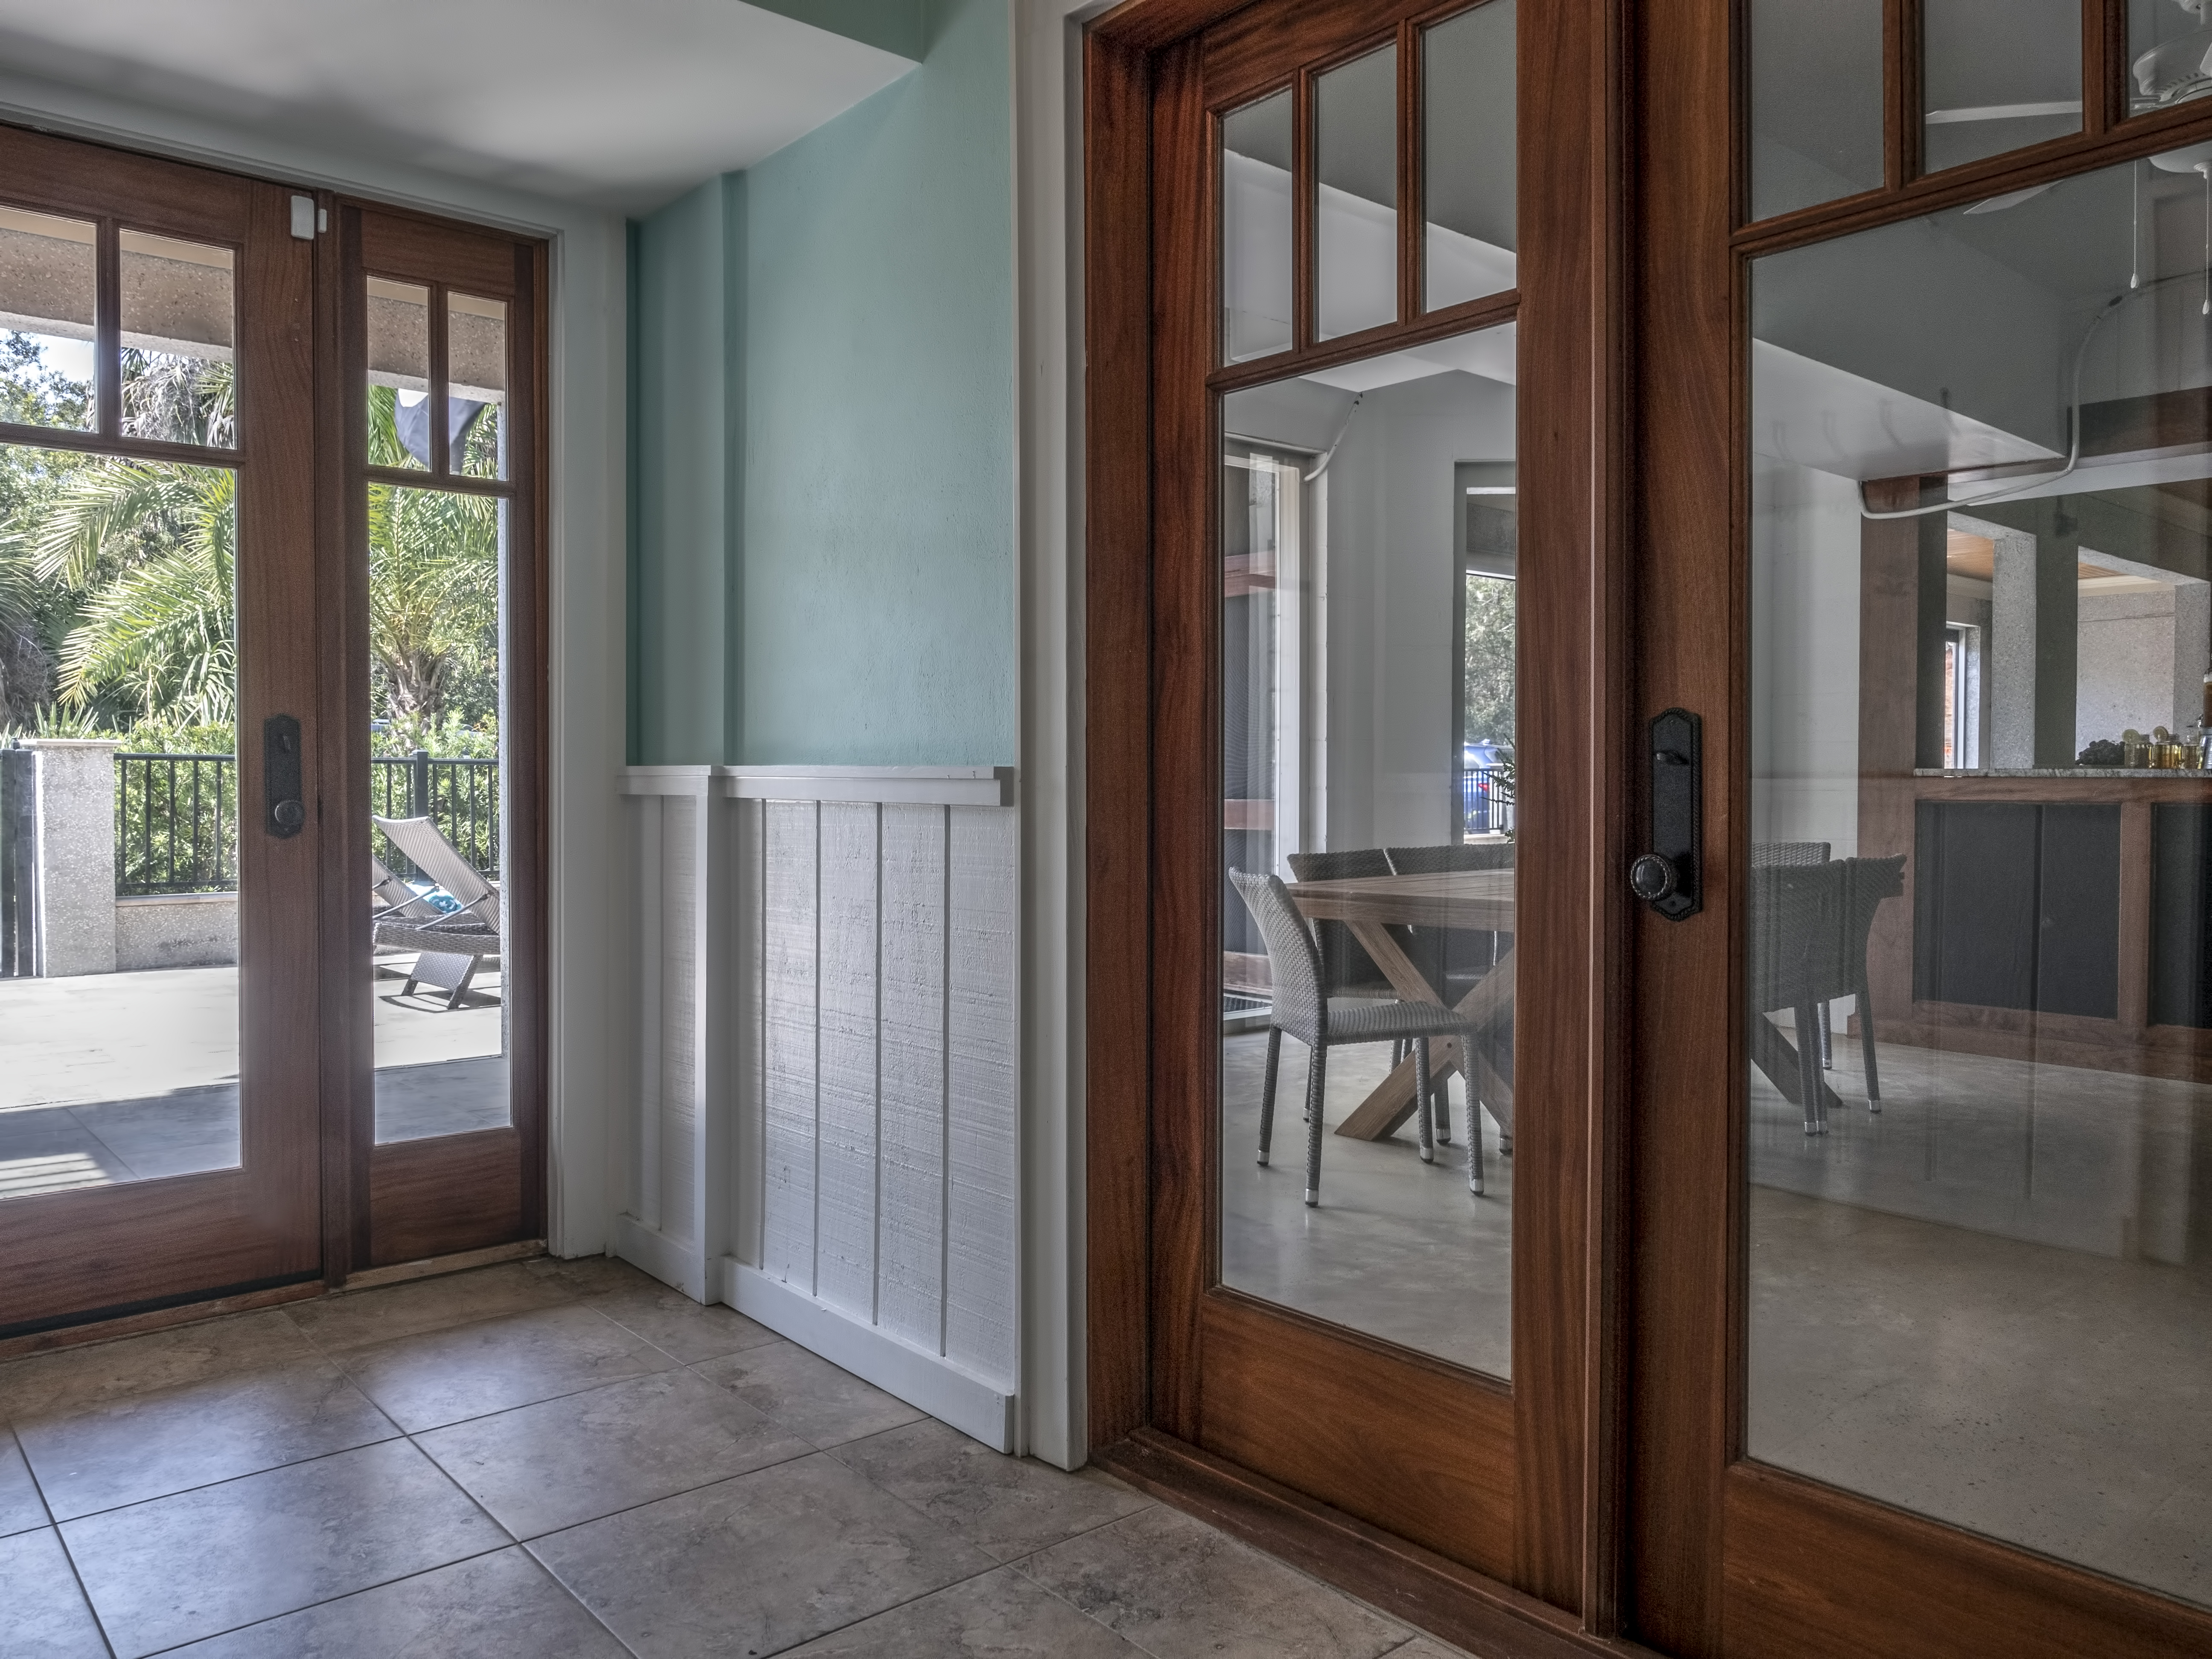 Lower level entrance into home and lanai area